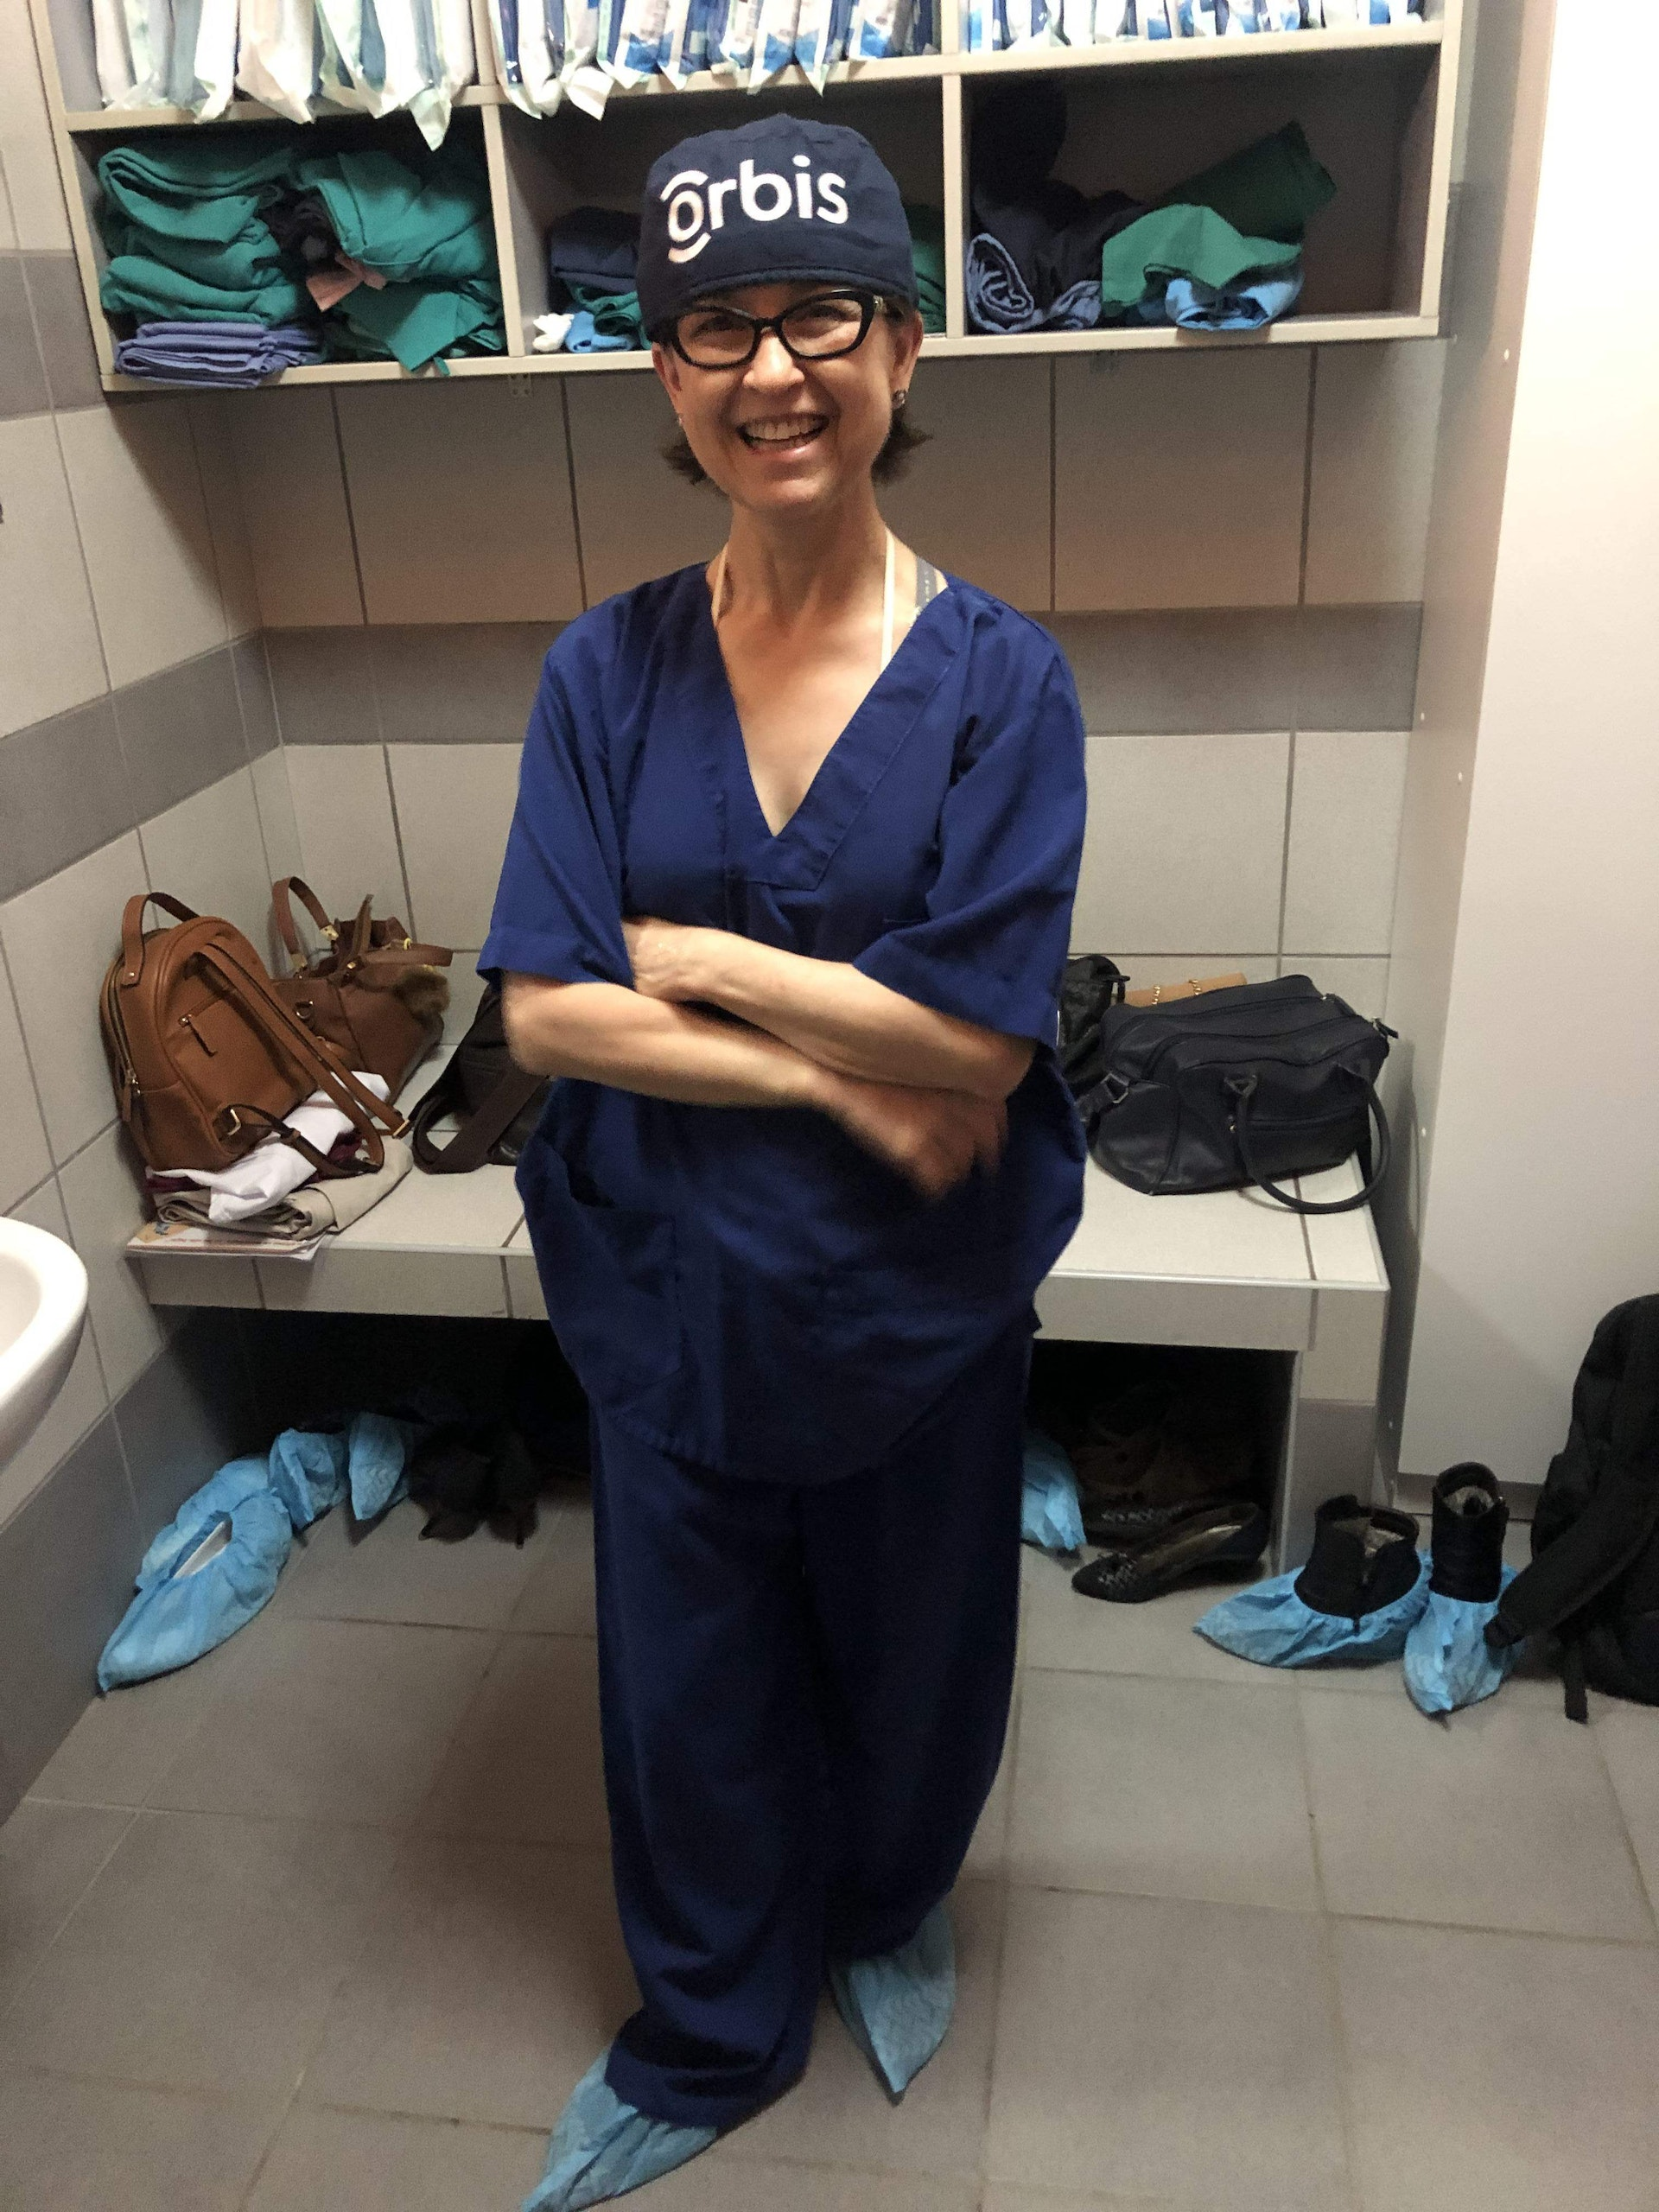 Orbis Volunteer Faculty Dr.Laura Wayman in her scrubs